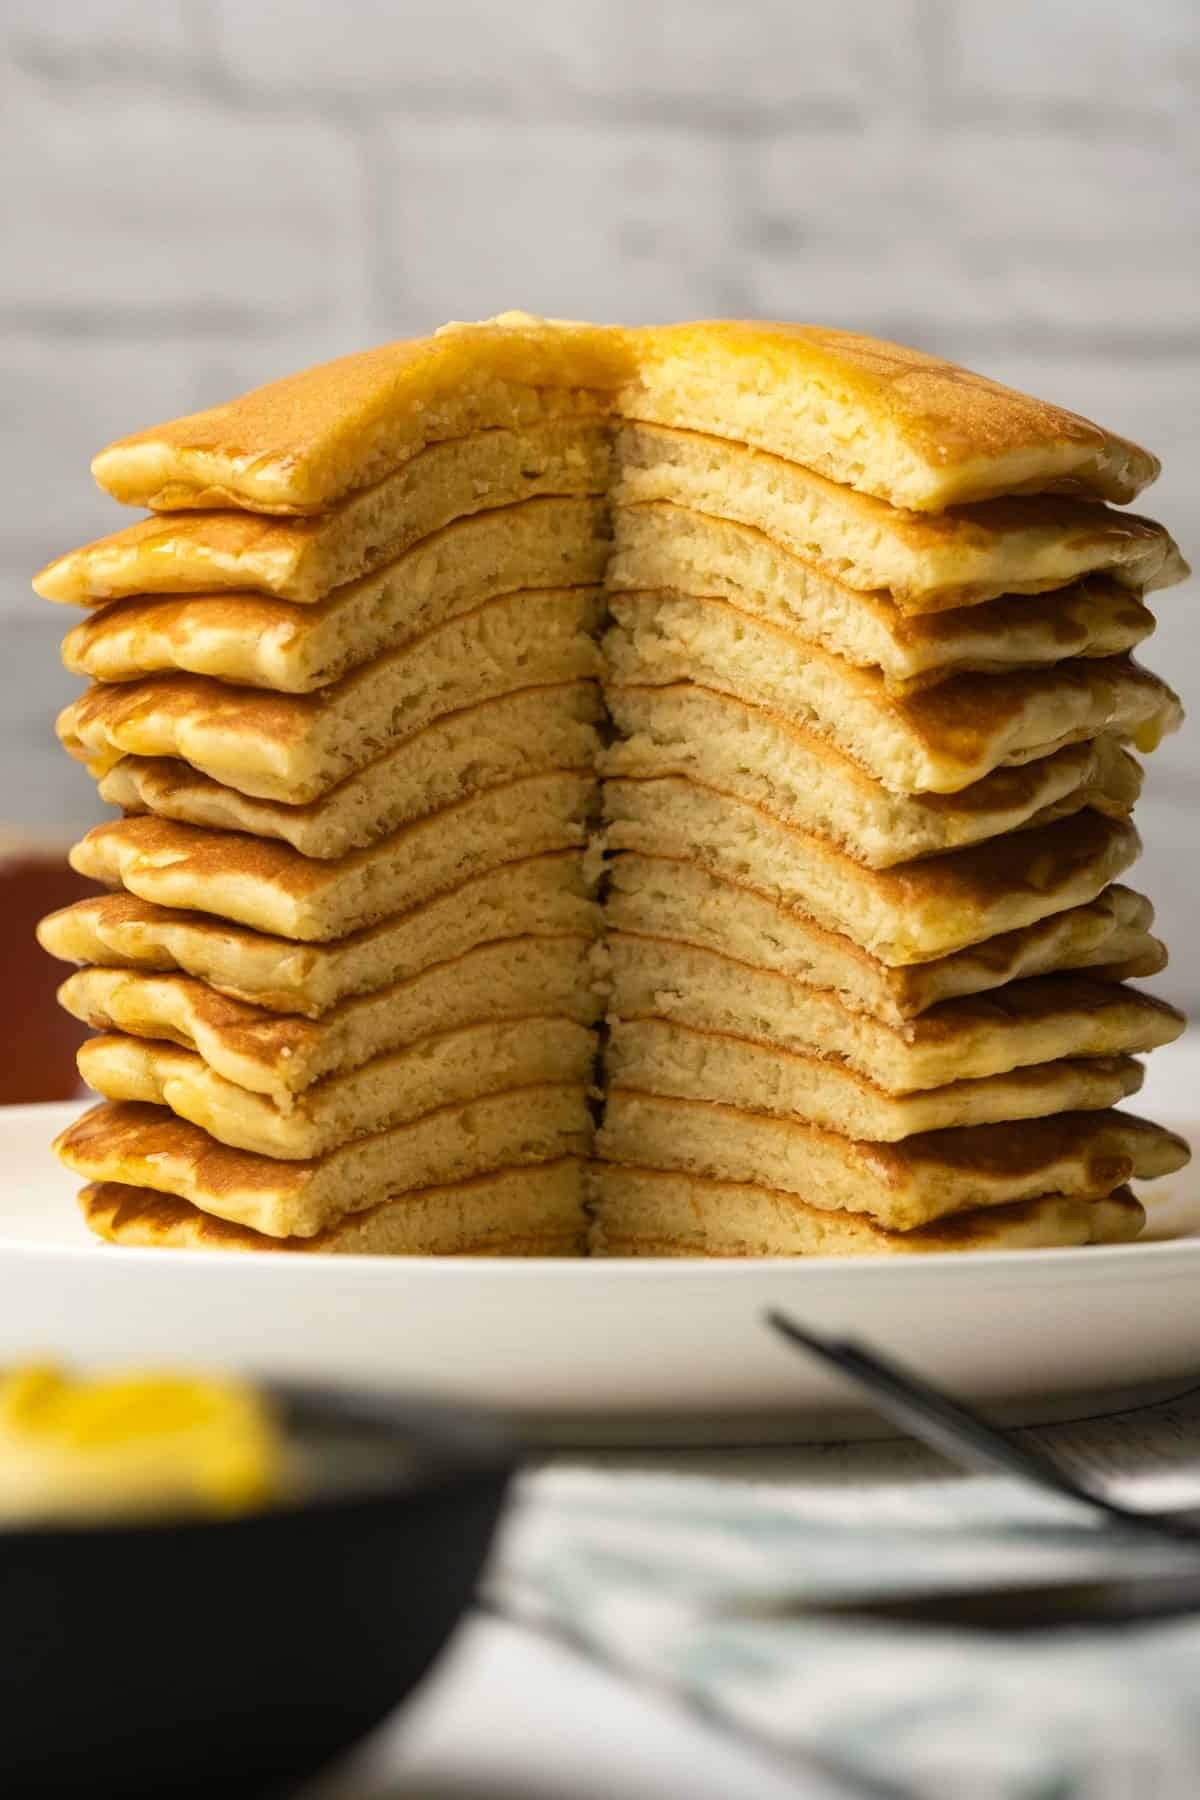 Stack of pancakes with a section cut out of the stack, on a white plate.